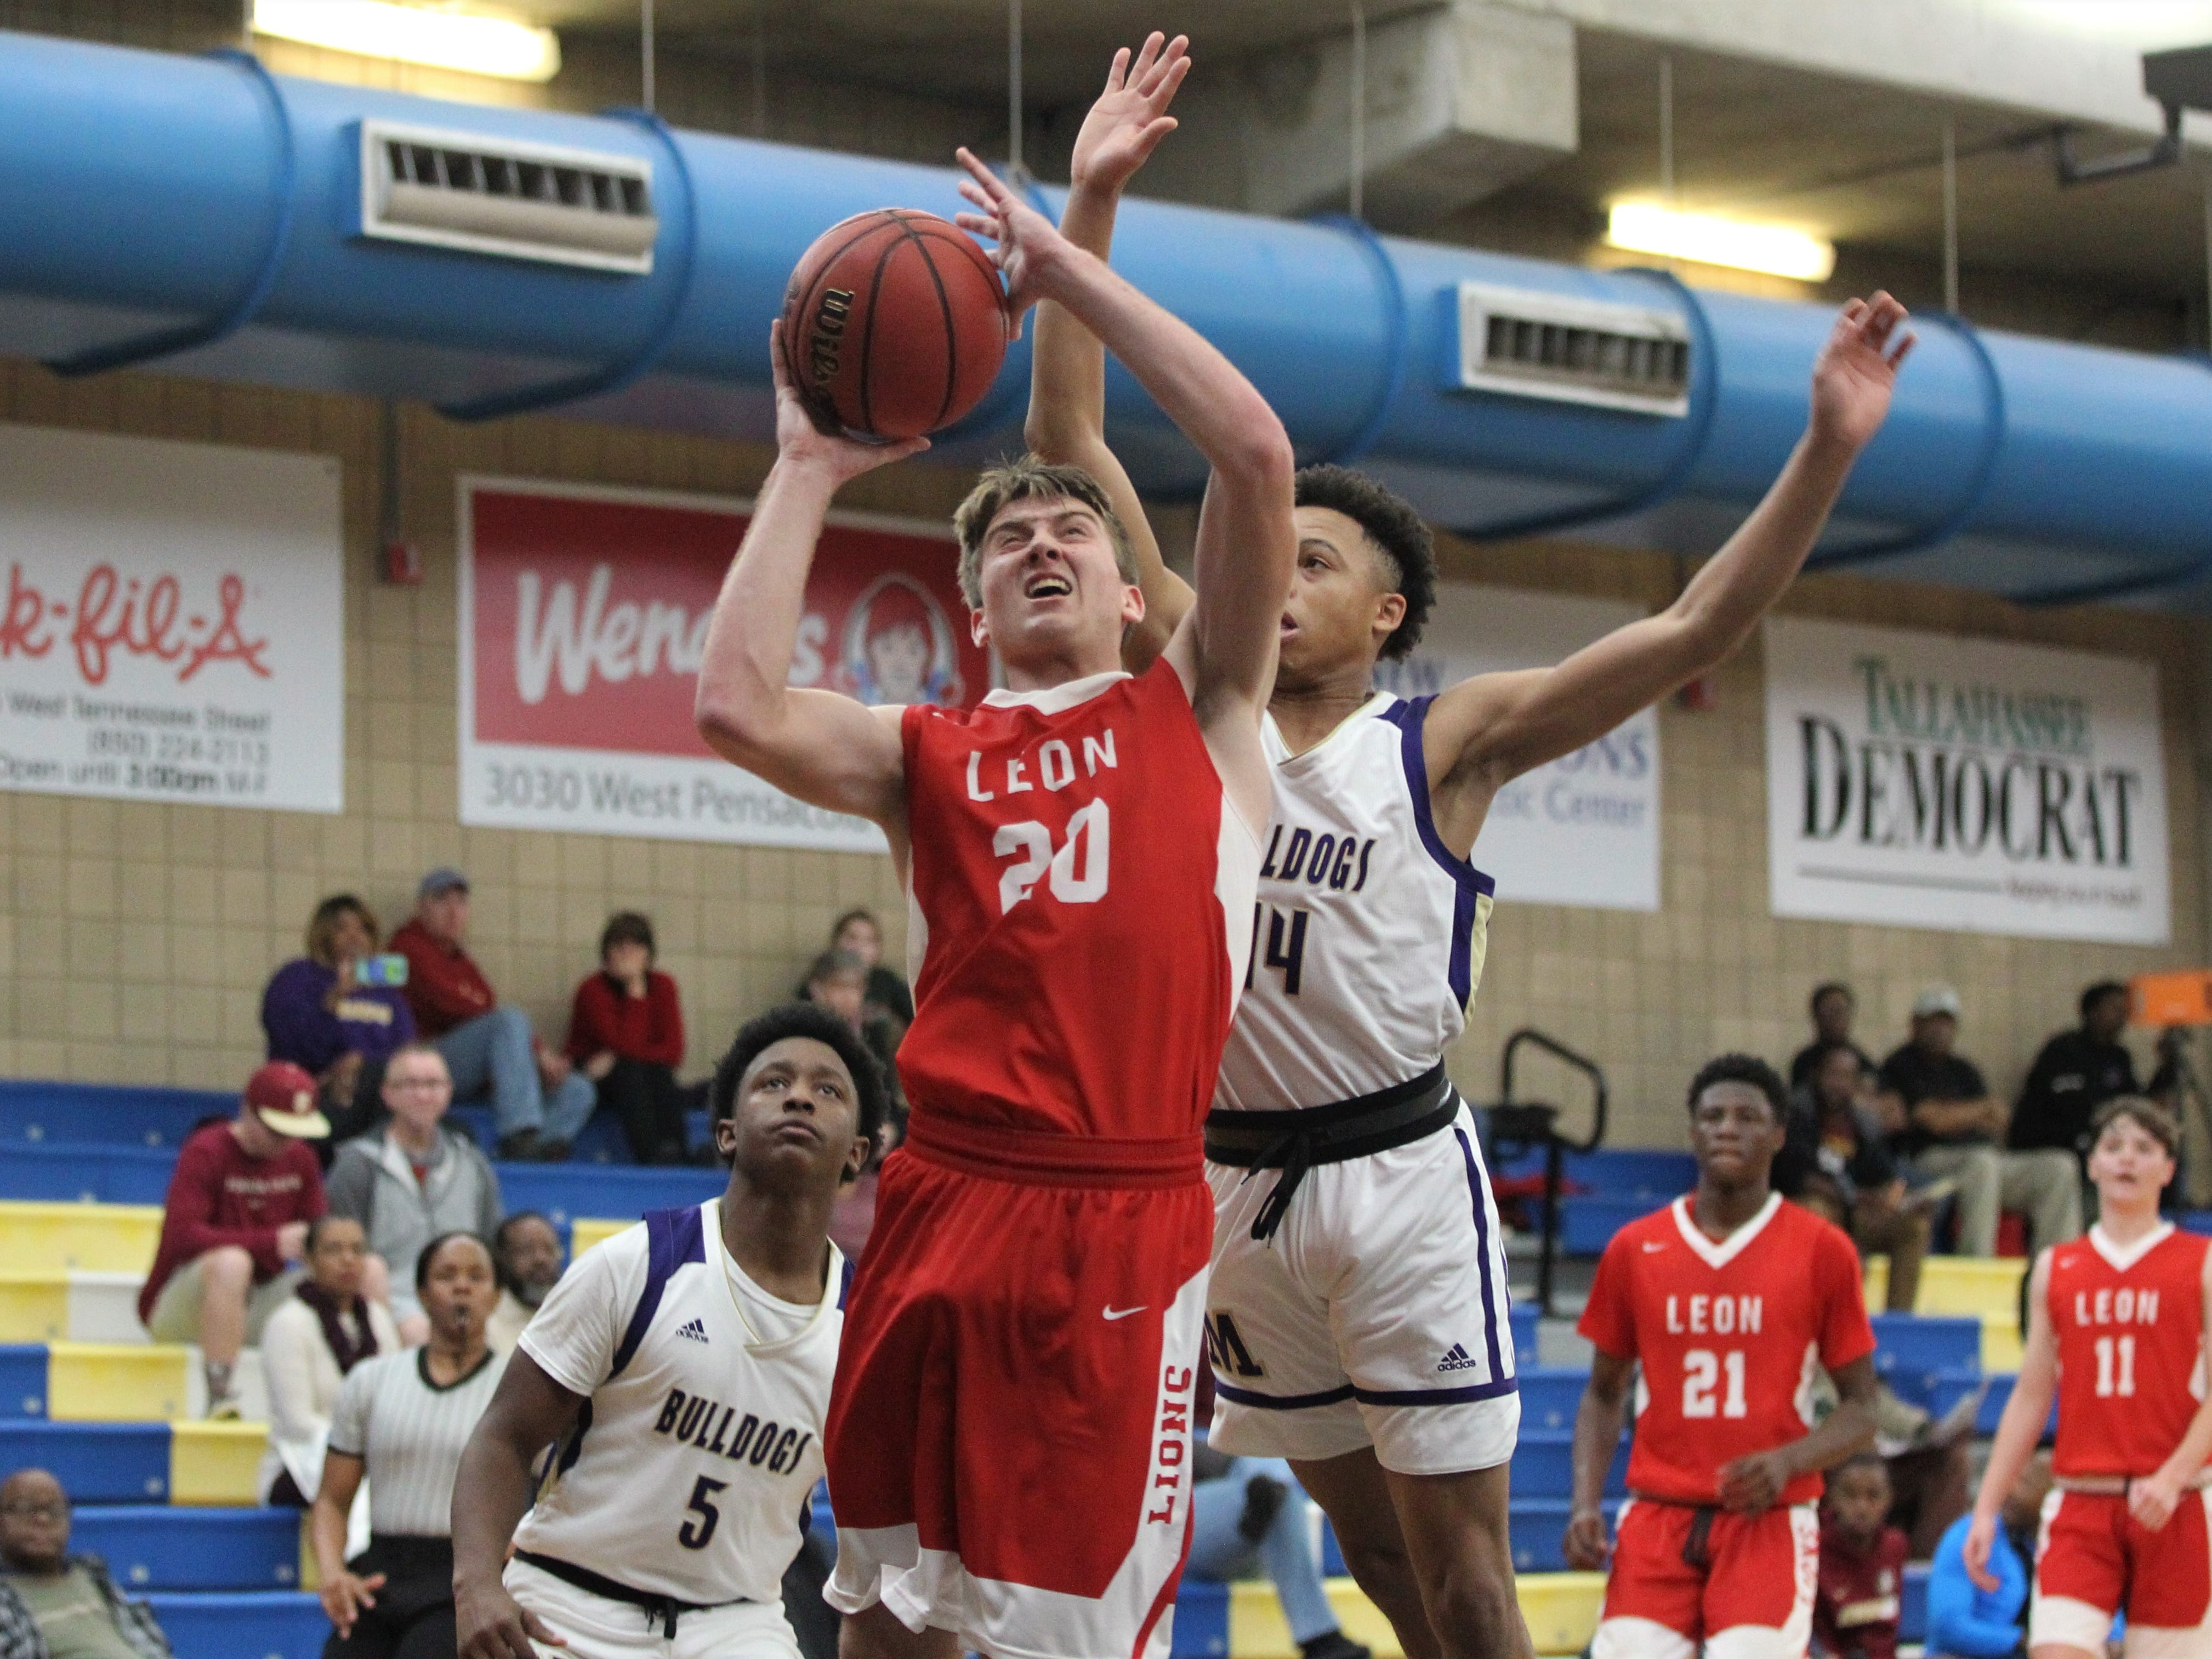 Leon's Dan Campbell goes up for a contested layup as Leon plays Marianna in the 2018 Capital City Holiday Classic at TCC.